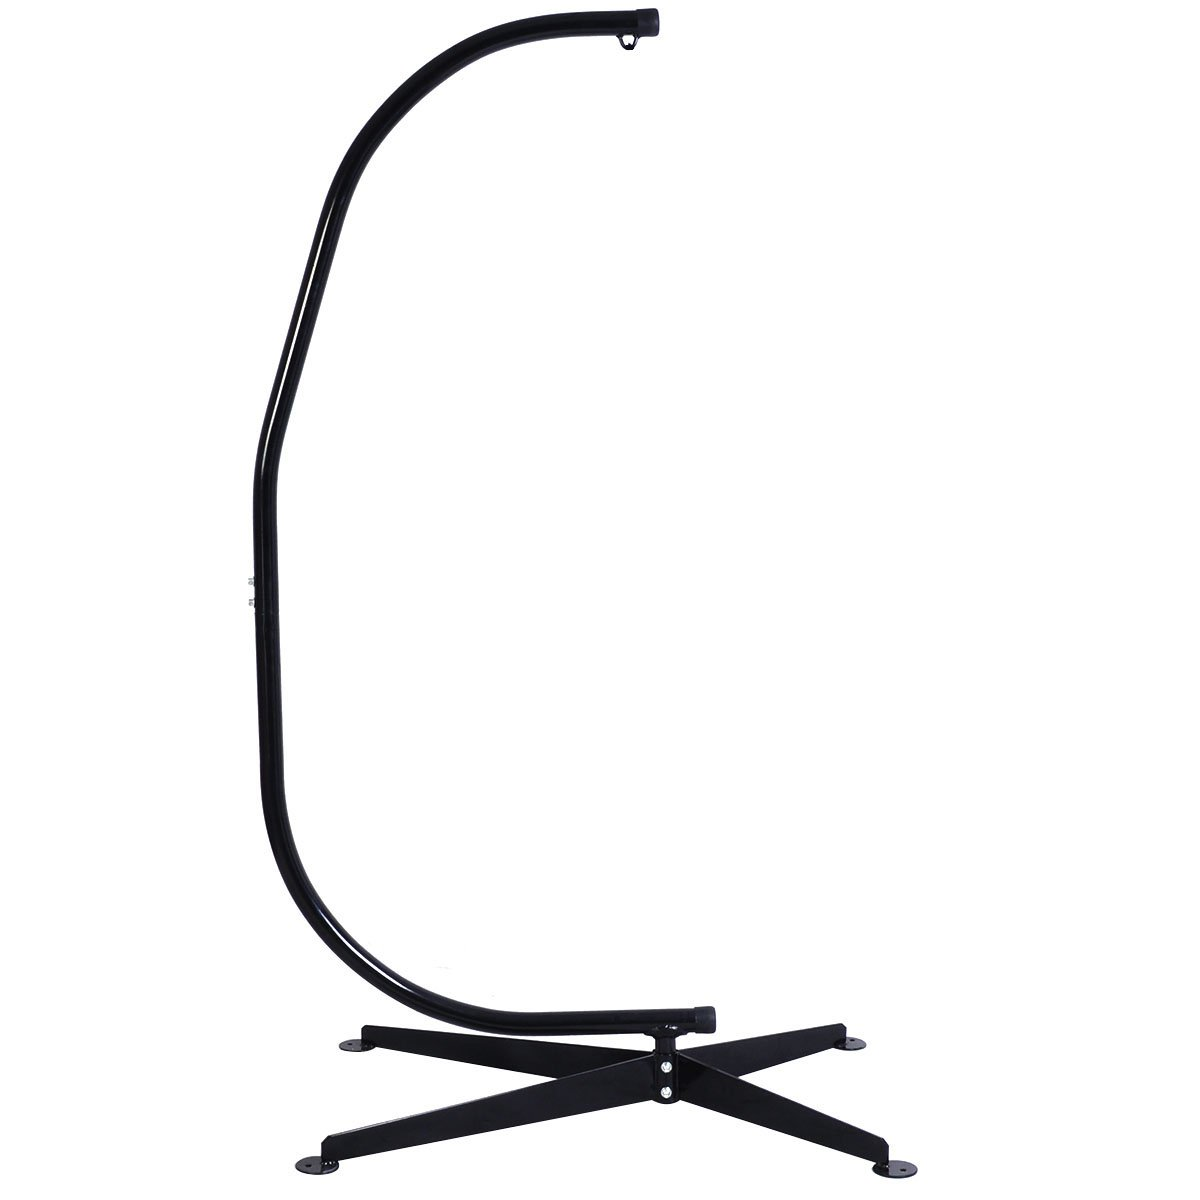 Costway C frame hammock chair stand Construction sturdy Tubular Indoor & Outdoor Garden Patio Black